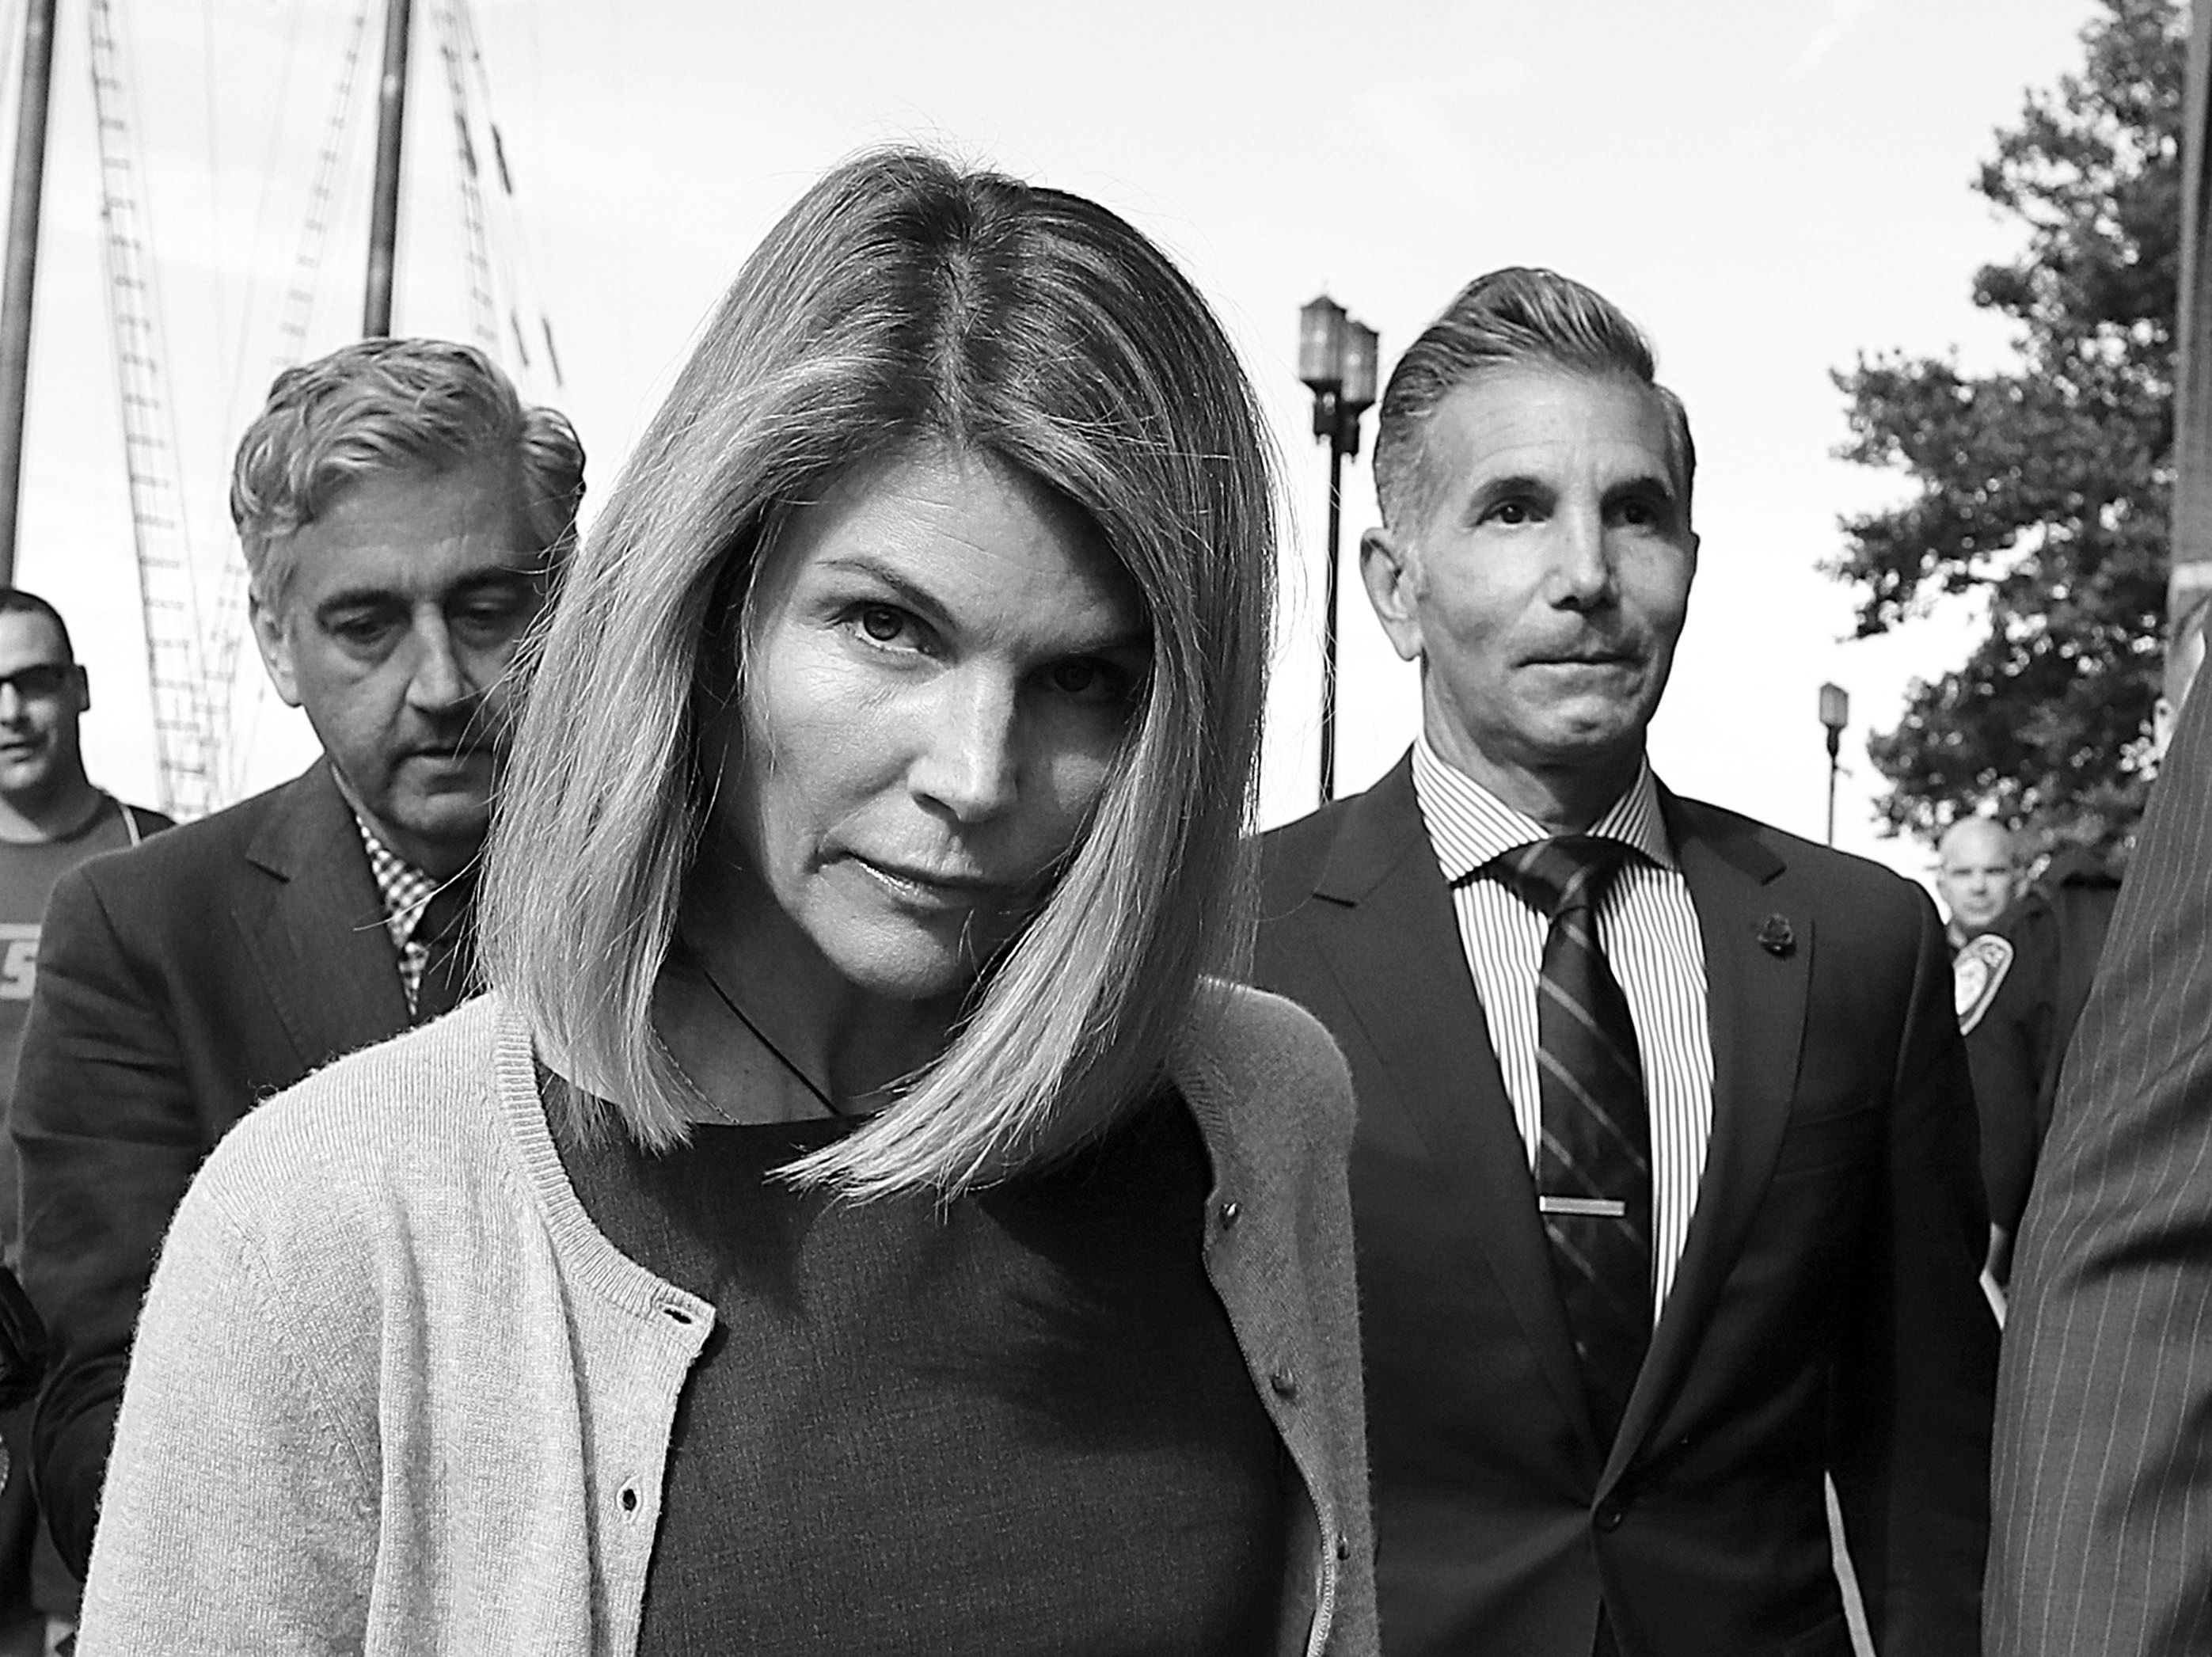 Lori Loughlin Reportedly Almost Pled Guilty After New Charge: 'Her Friends and Family Were Encouraging Her'